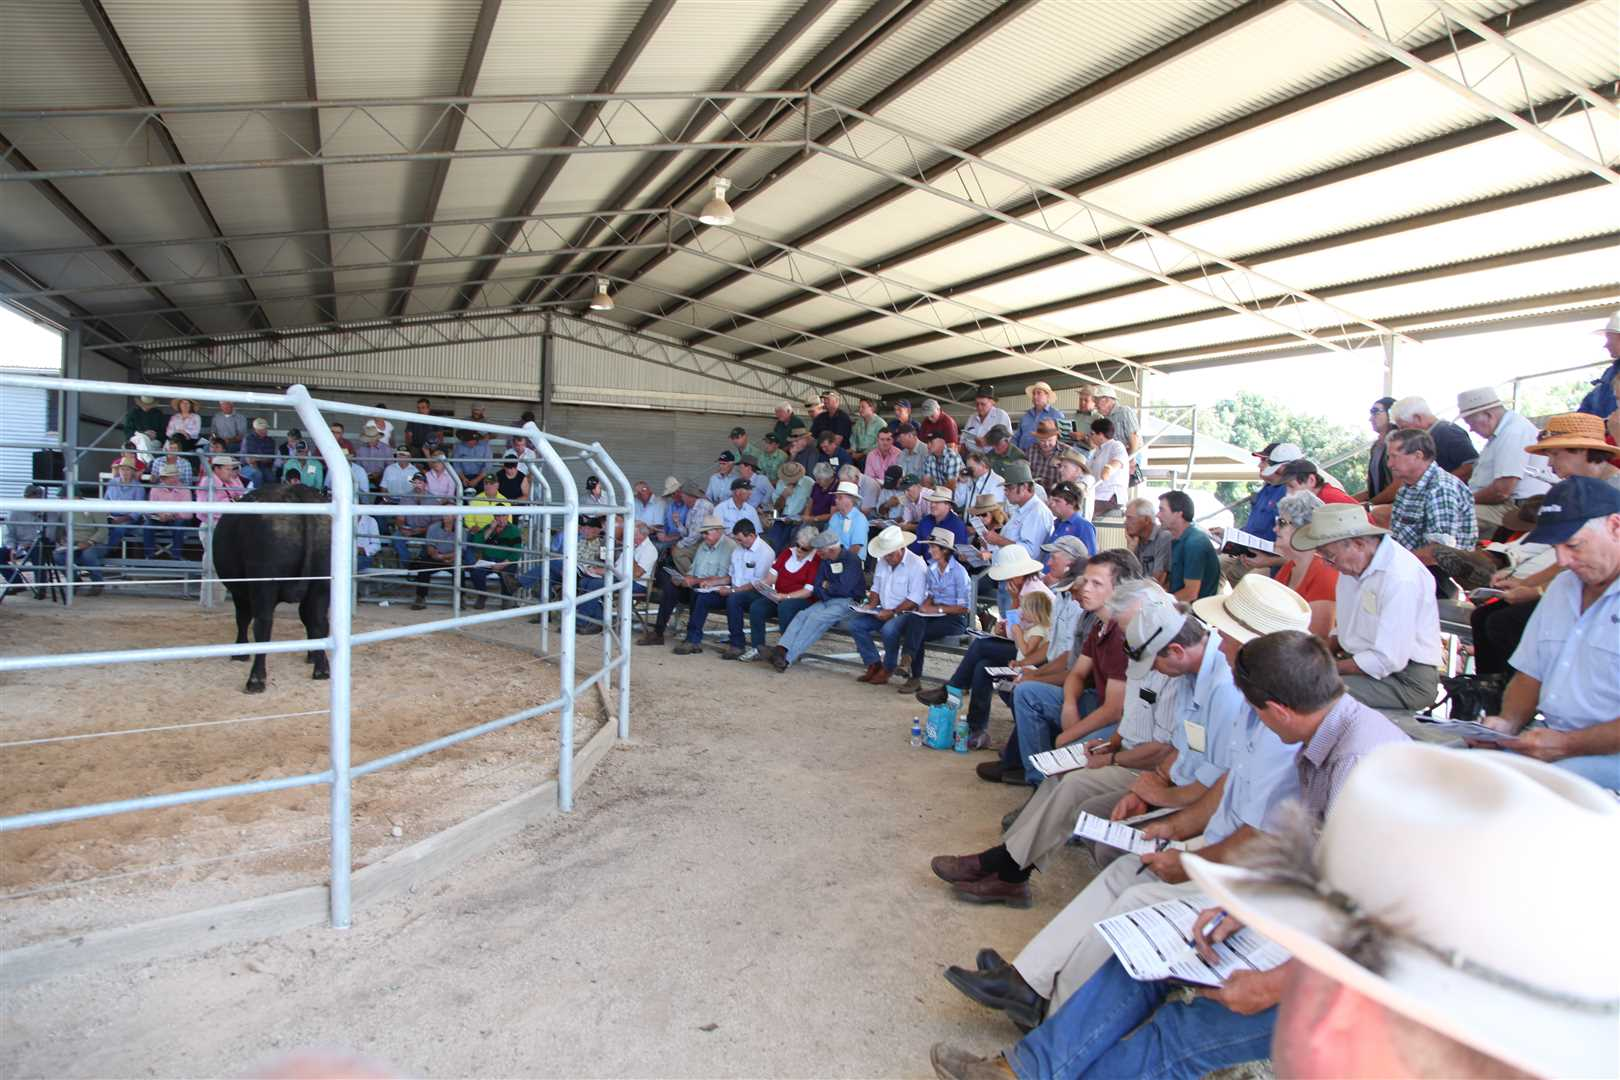 Strong Crowds, easy access for many buyers, North East Victoria such a strong area to be selling Bulls into.